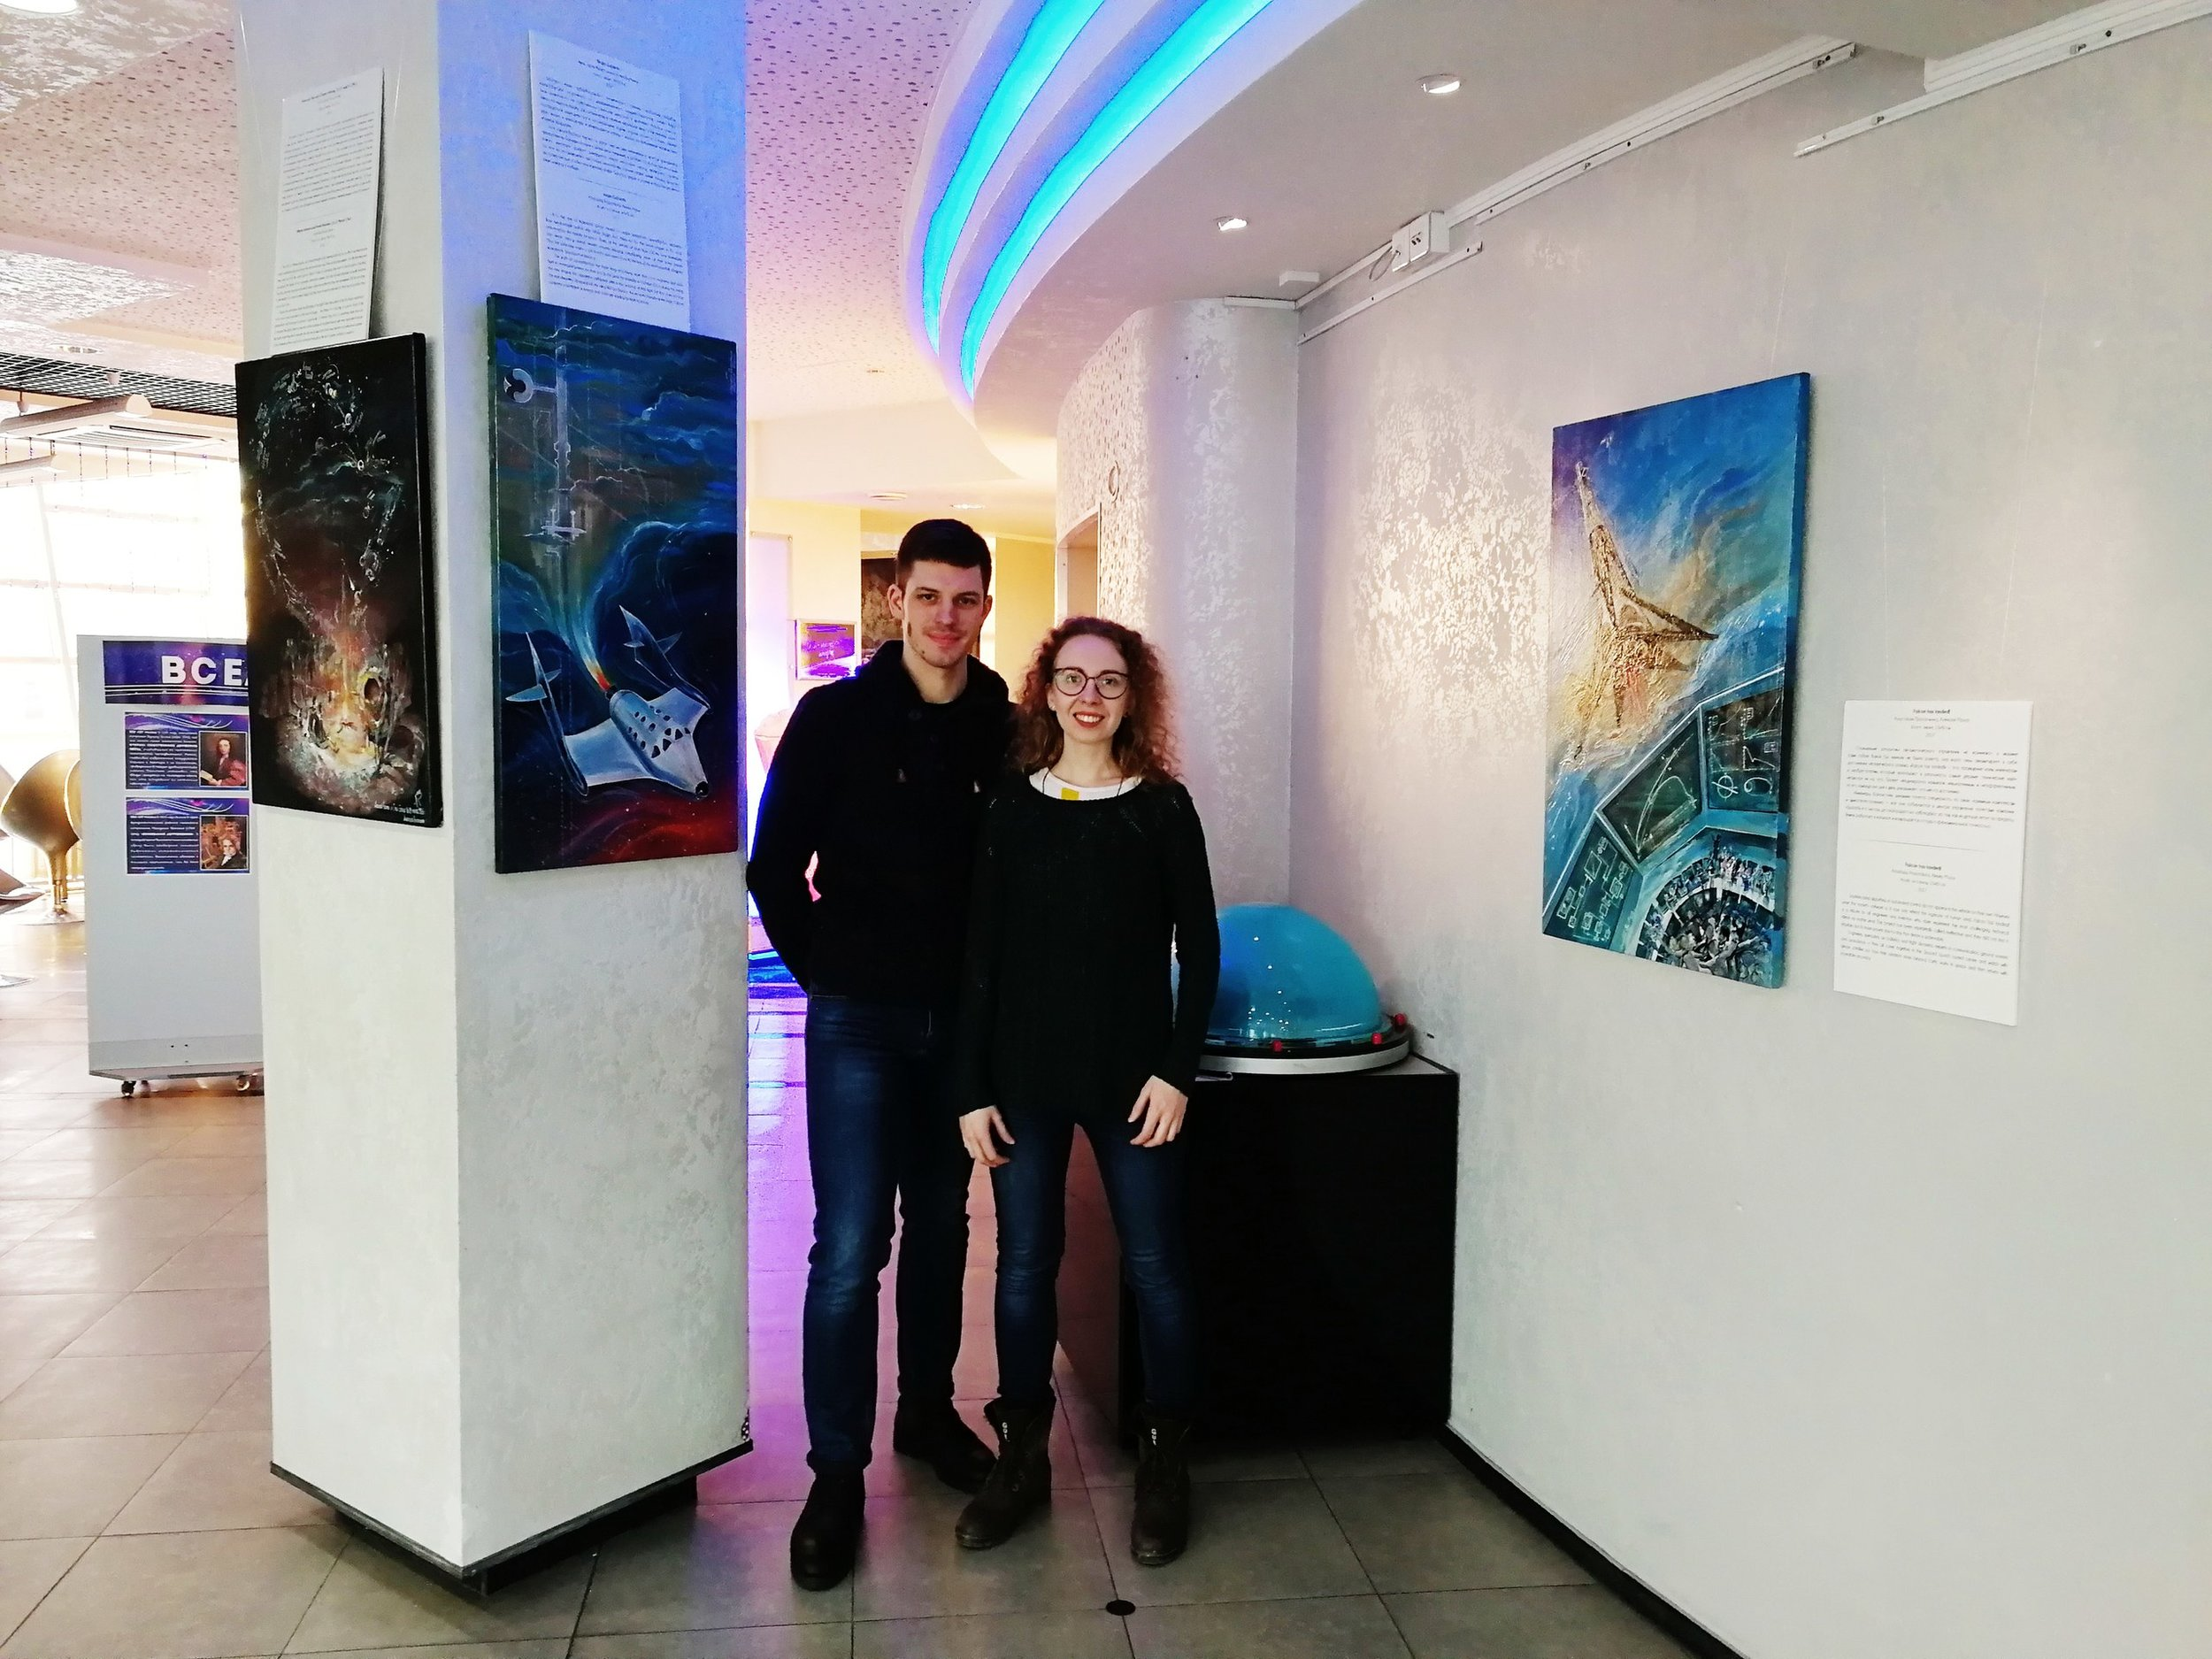 12 paintings - Visit in working hours to explore my art and maybe to learn something from the planetarium events :)